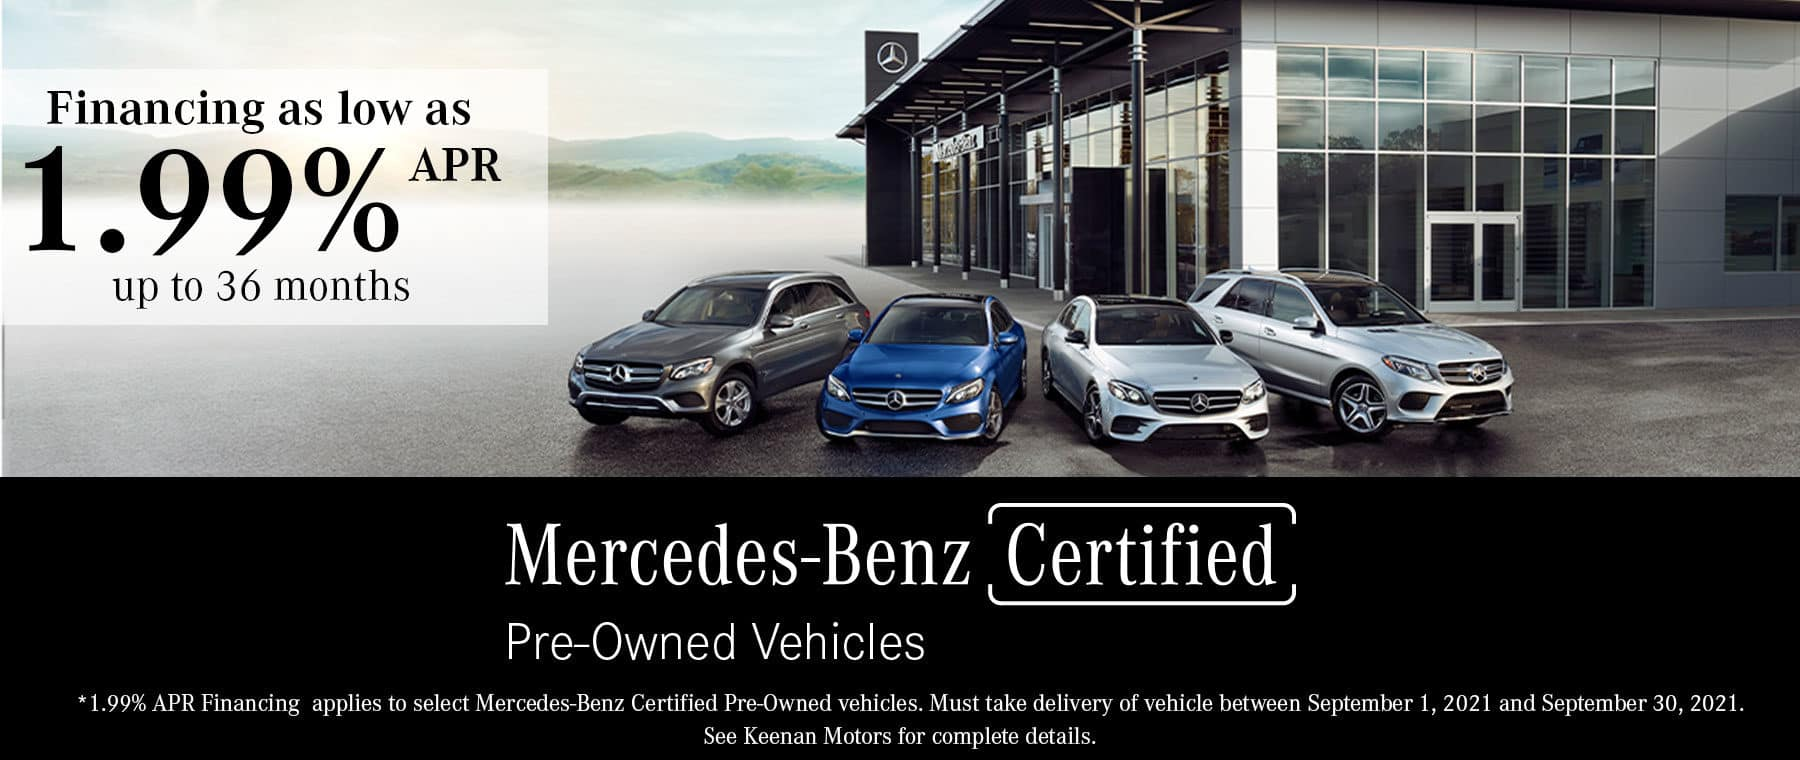 Certified Pre-Owned by Mercedes-Benz at Keenan Motors